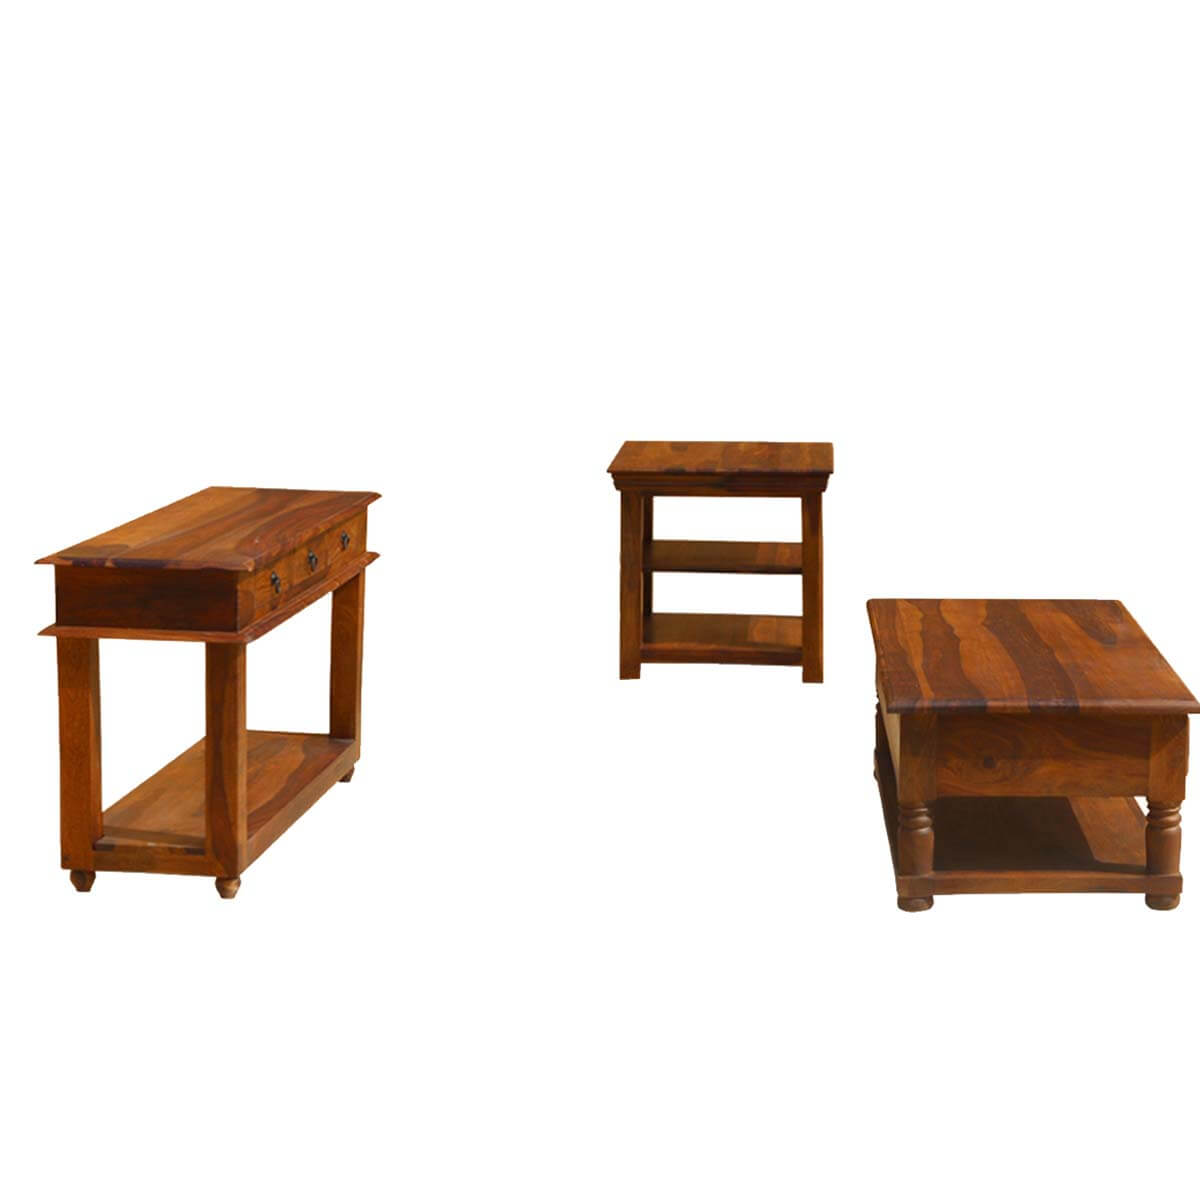 Early american solid wood console coffee accent table 3pc set Coffee and accent tables